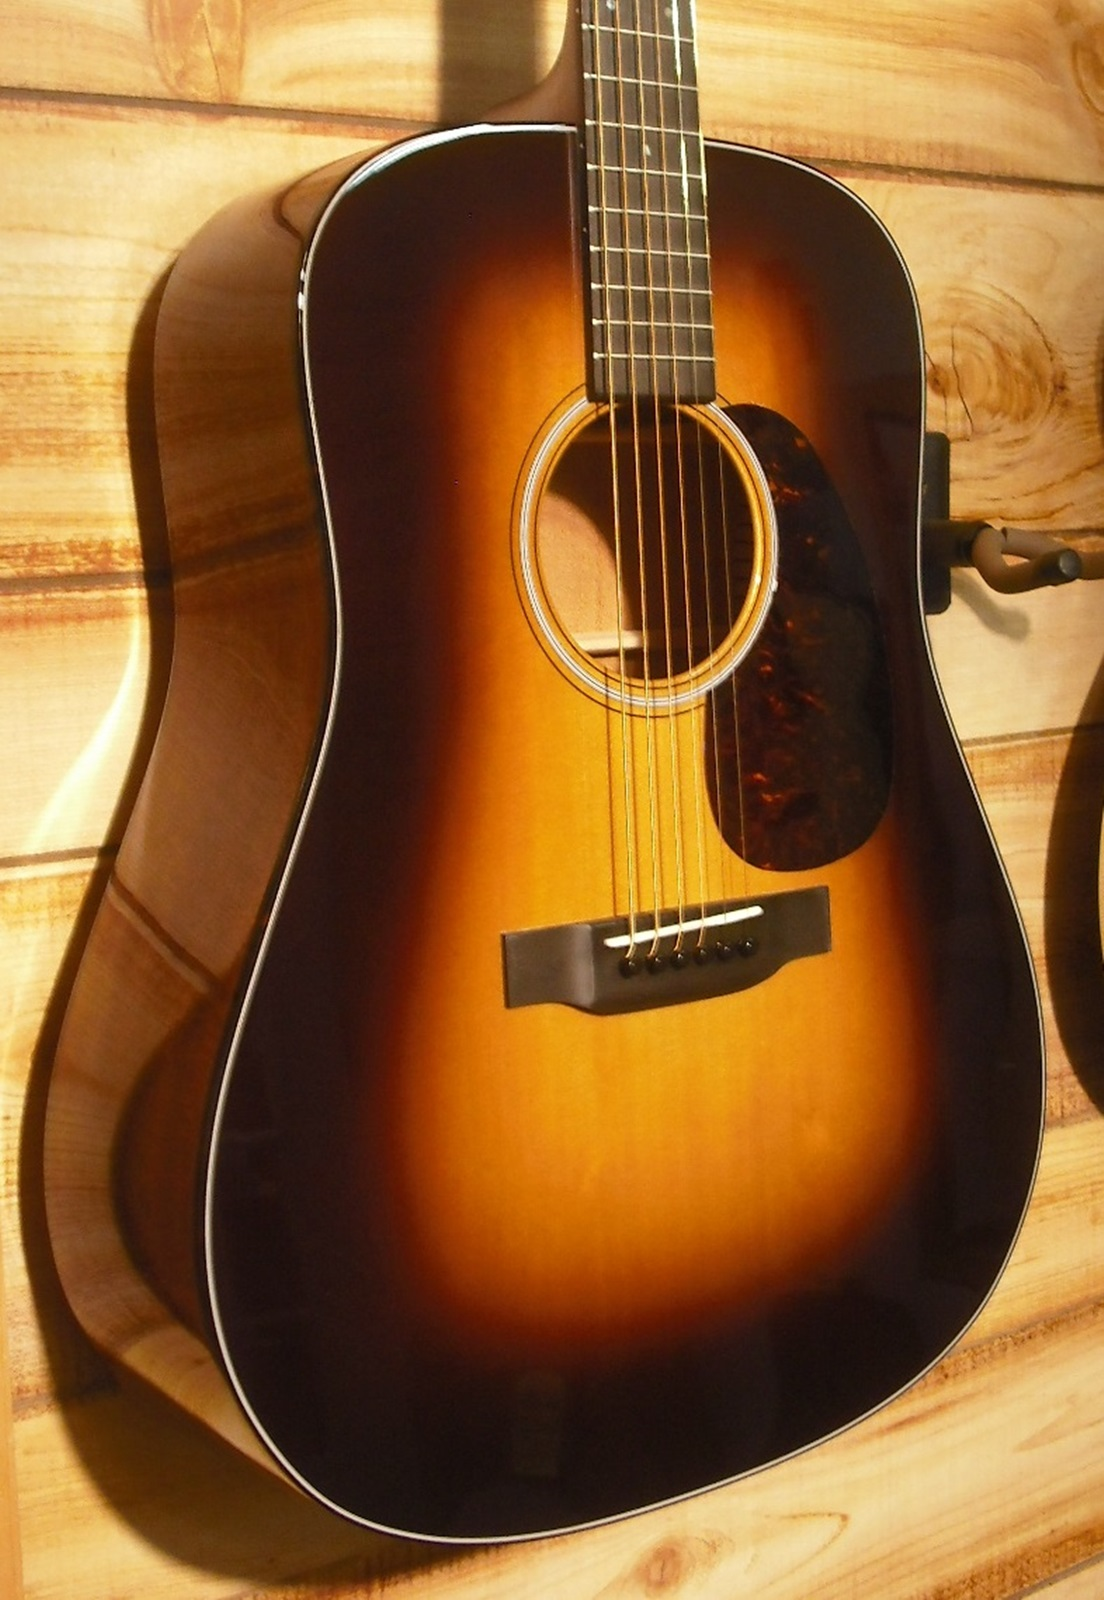 Martin® D-18 1935 Sunburst Dreadnought Acoustic Guitar w/Case